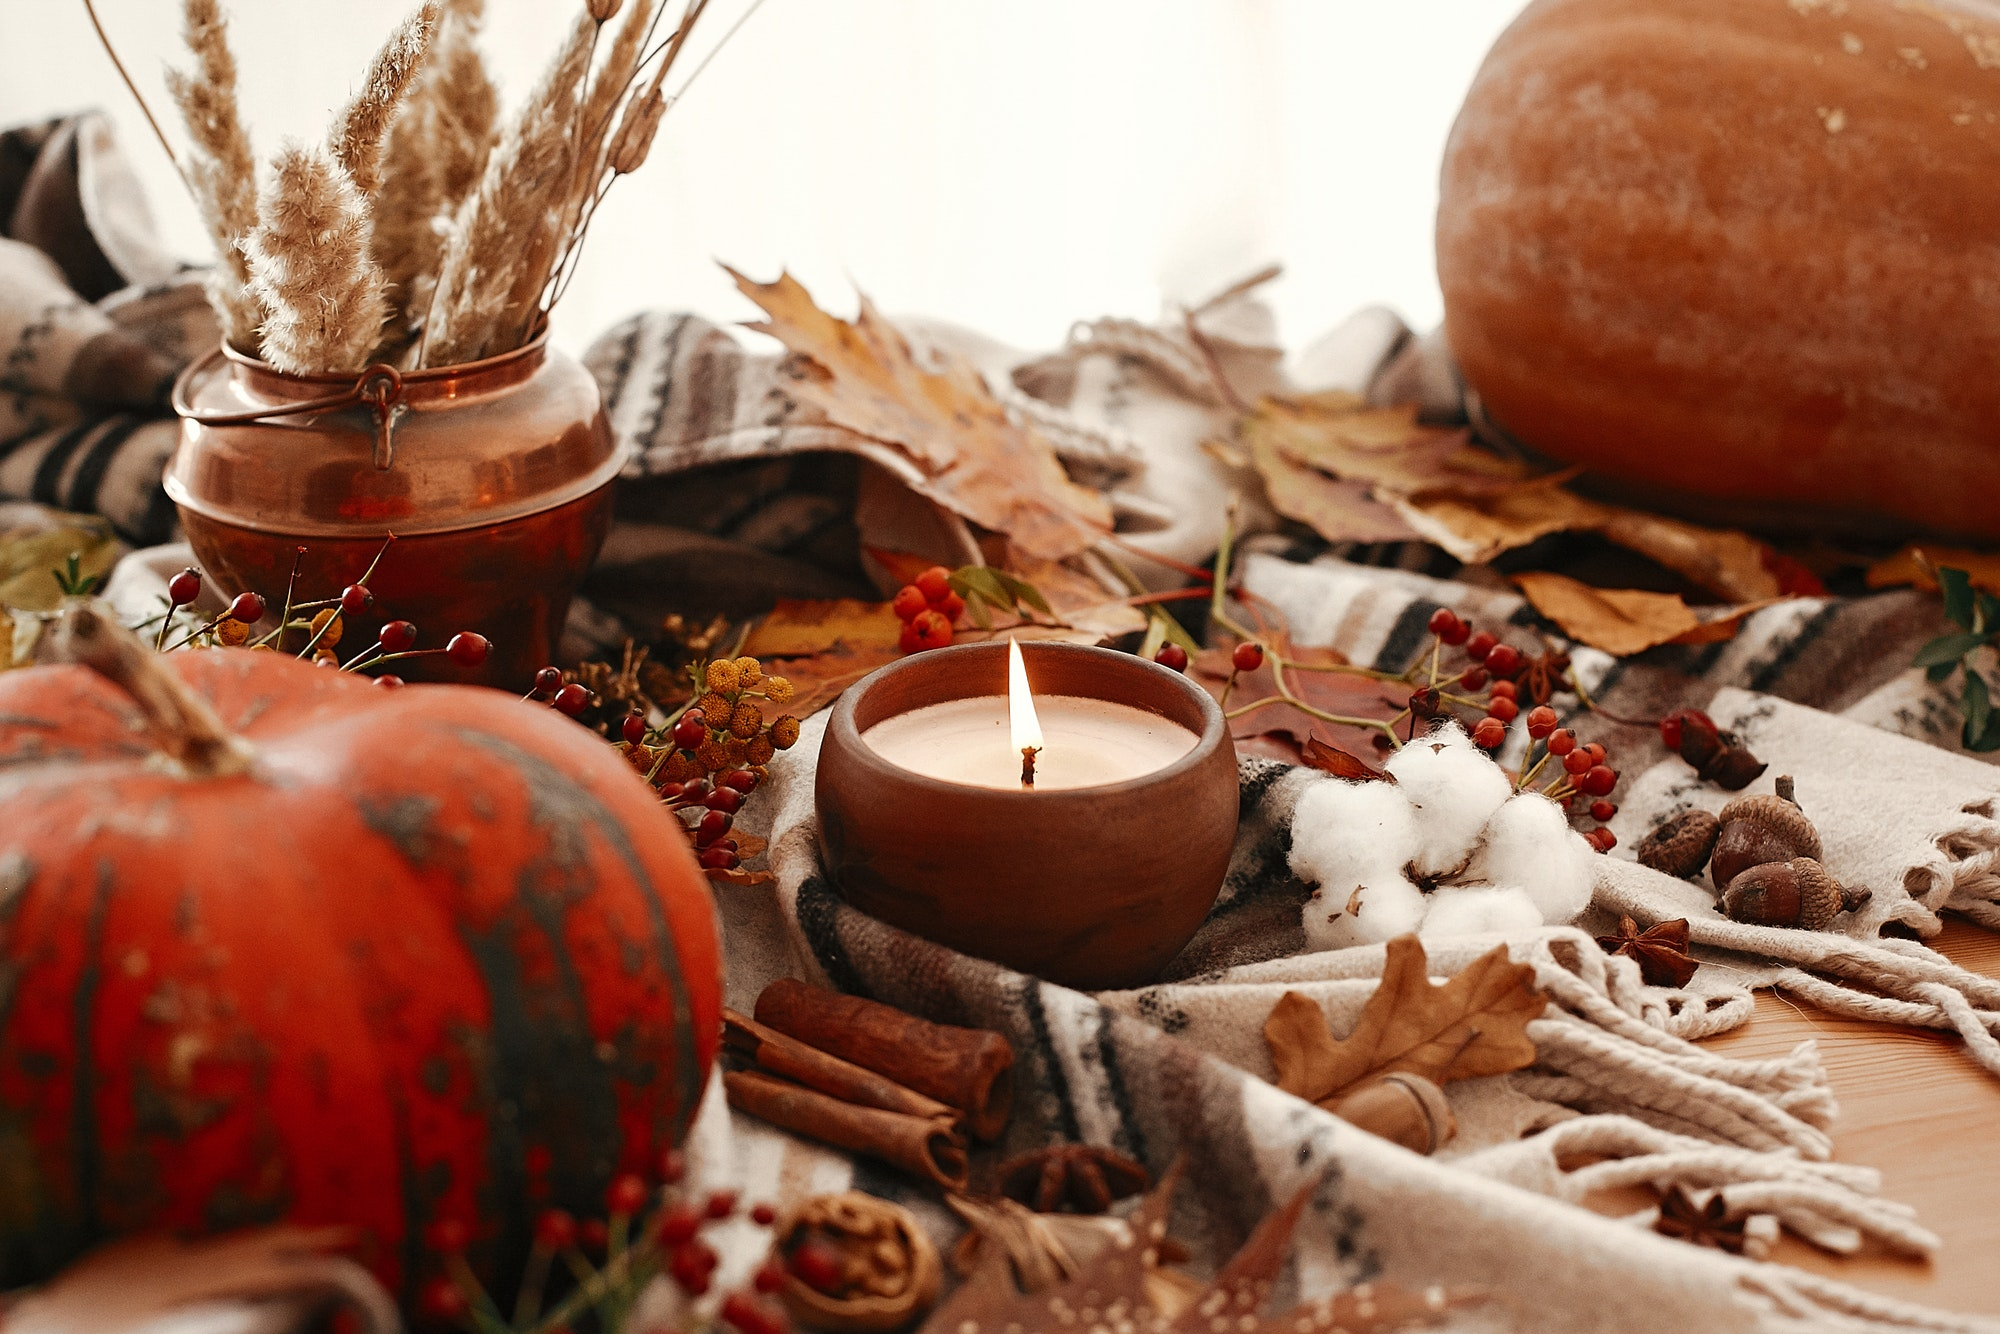 Pumpkin and candle with berries, fall leaves, anise,herbs, acorns, nuts, cinnamon, cotton